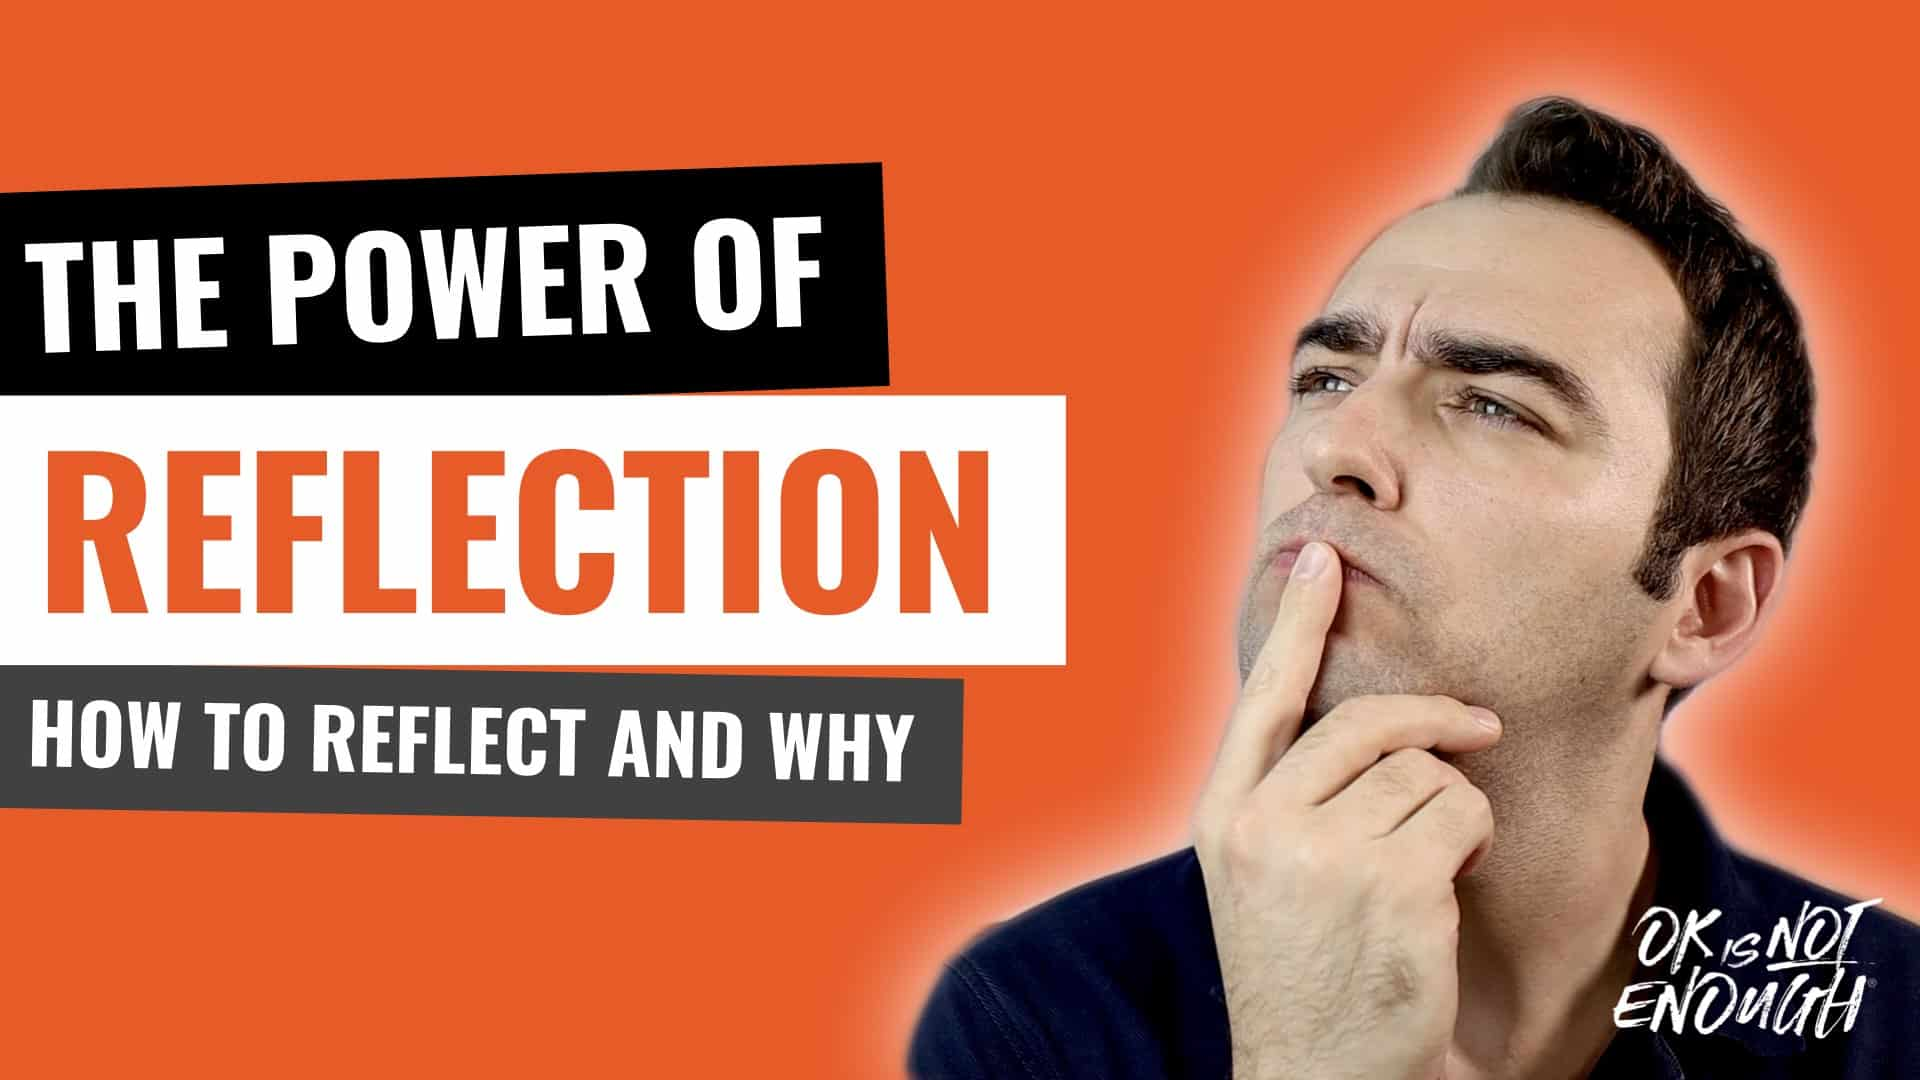 The Power Of Reflection: How to Reflect And Why